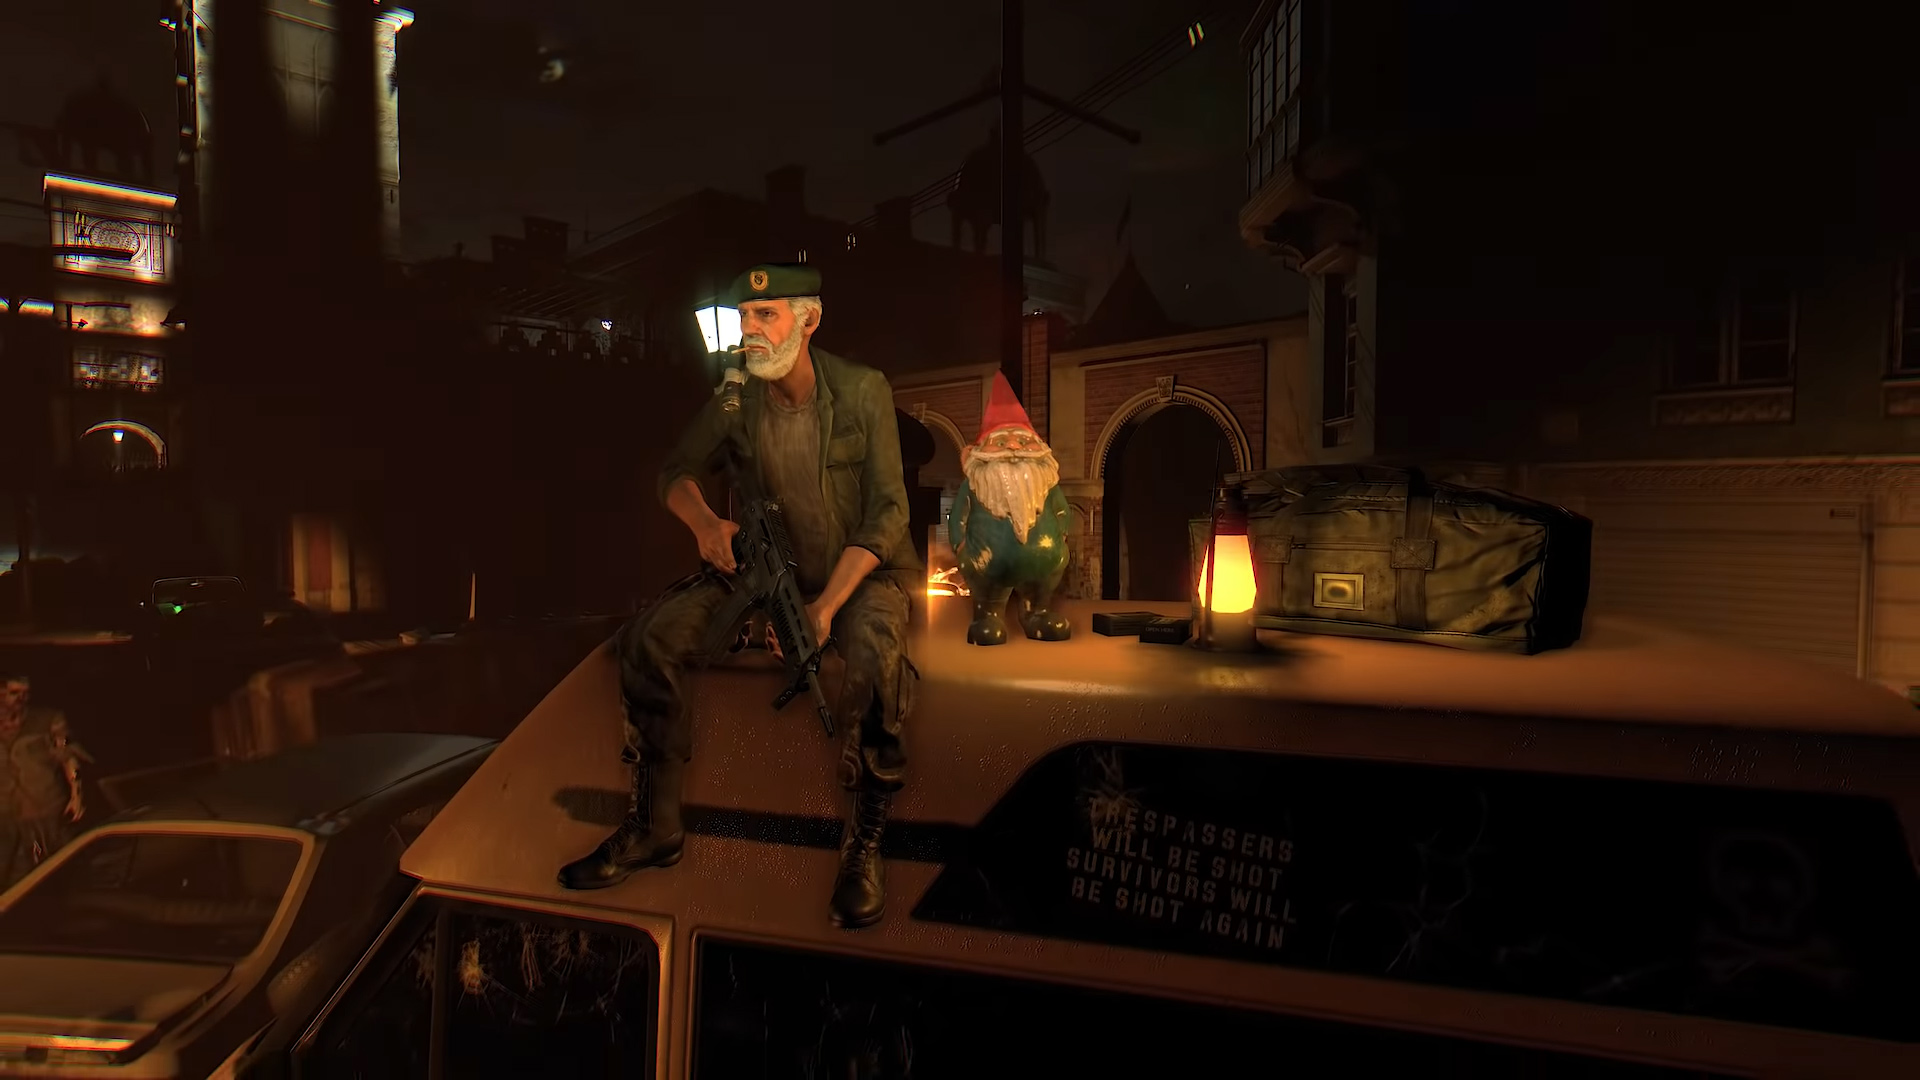 Left 4 Dead's Bill is back for a Dying Light cameo and he brought Gnome Chompski along for the ride screenshot